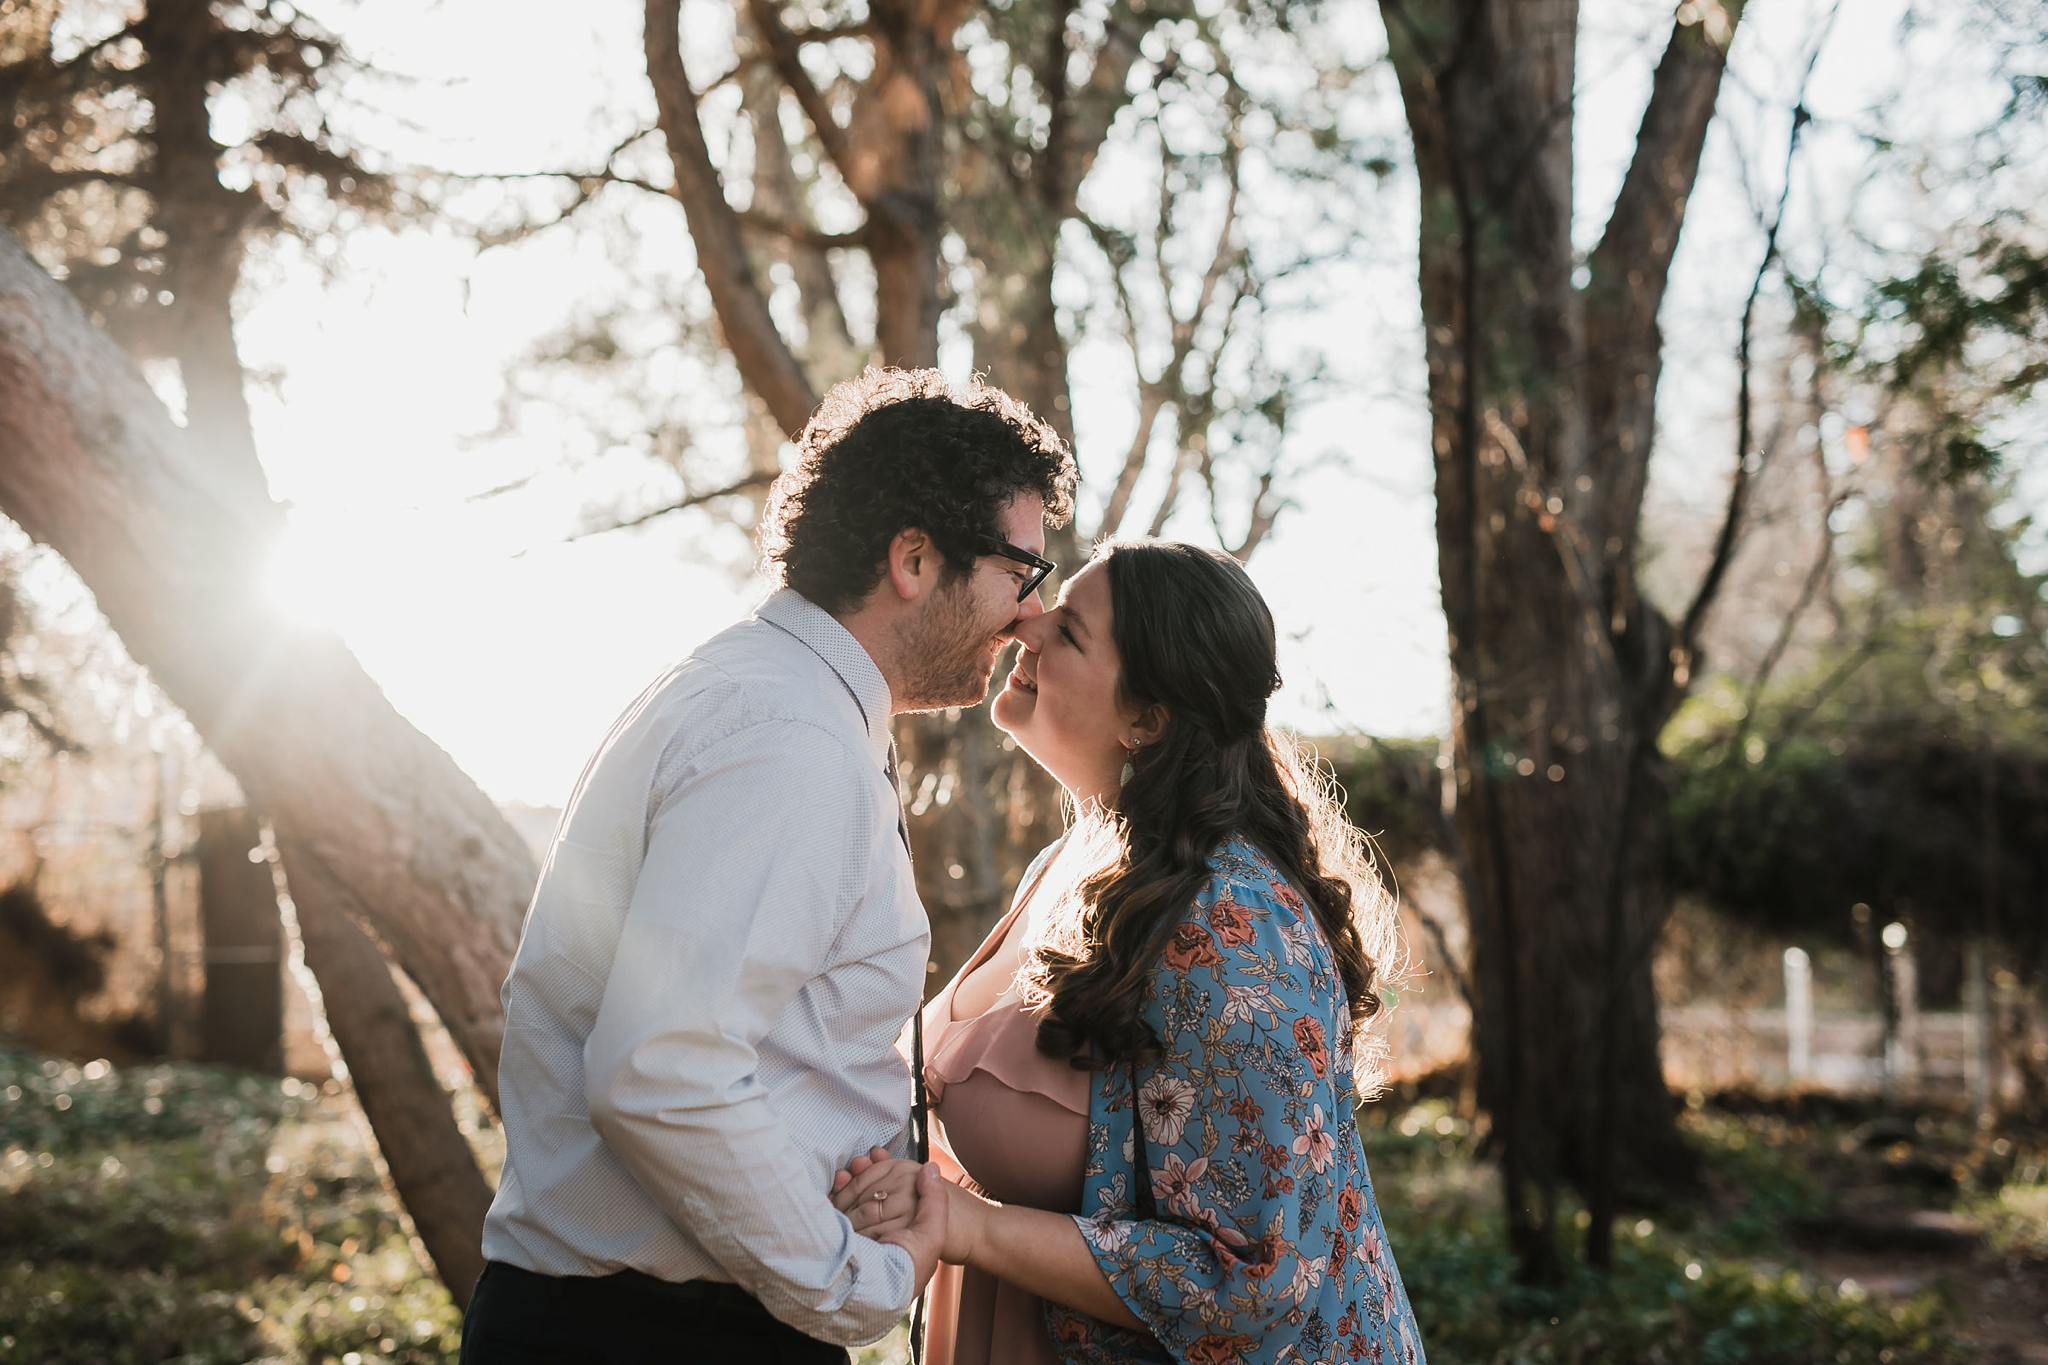 Alicia+lucia+photography+-+albuquerque+wedding+photographer+-+santa+fe+wedding+photography+-+new+mexico+wedding+photographer+-+new+mexico+engagement+-+los+poblanos+engagement+-+spring+engagement_0012.jpg